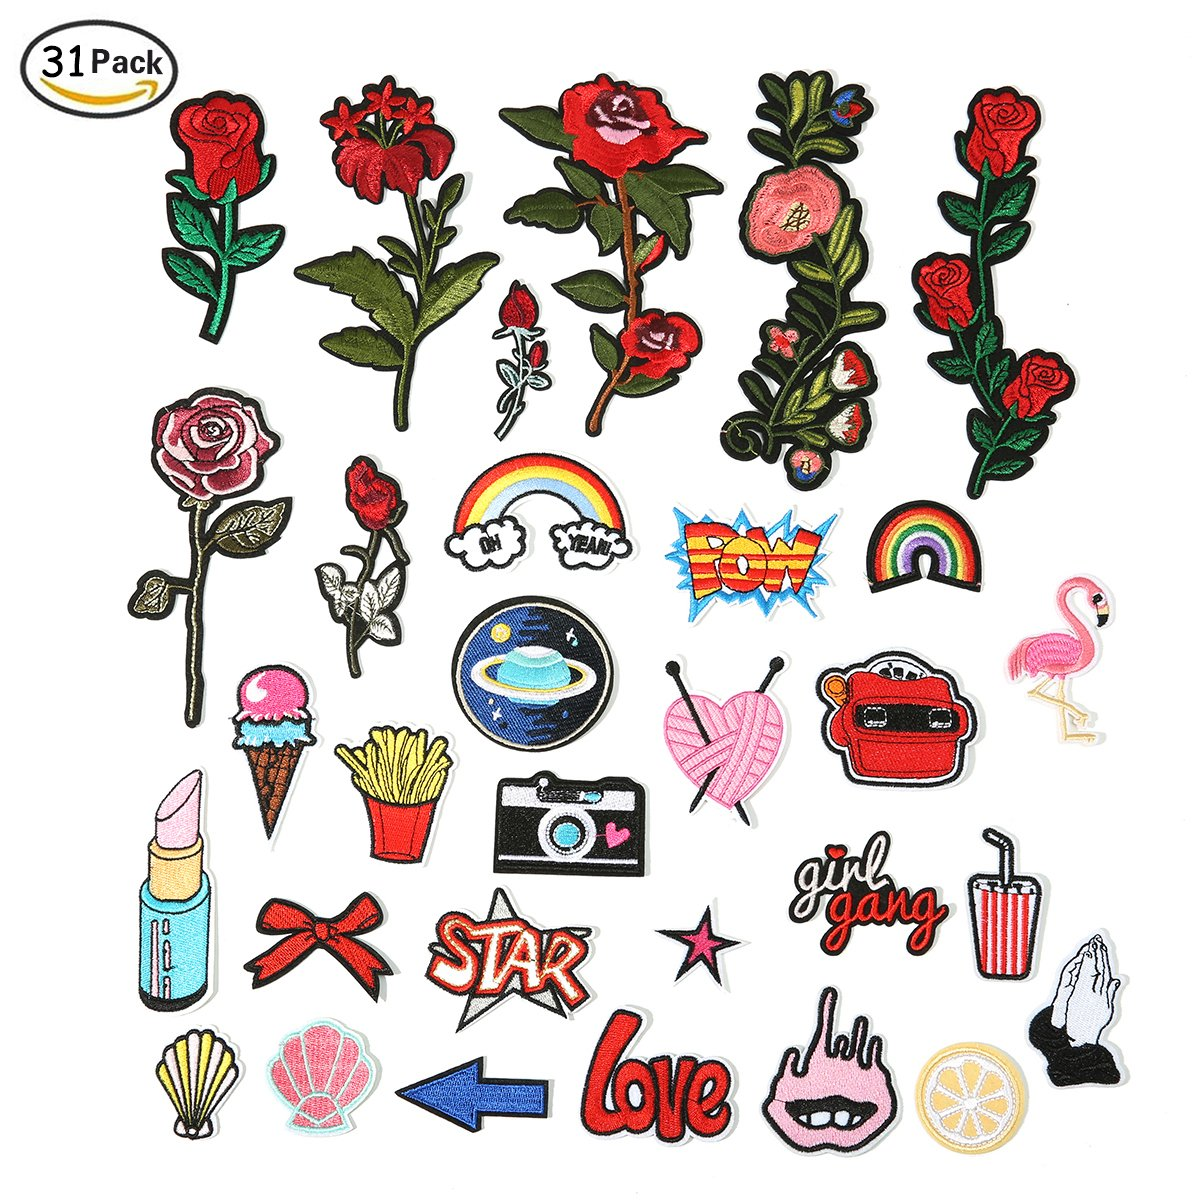 ARTISTORE Iron On Patches 31pcs Assorted Size Rose Cartoon Embroidered Motif Applique Decoration Patches DIY Sew on Patch for Jeans Clothing Denim Jeans Jacket Handbag Shoes